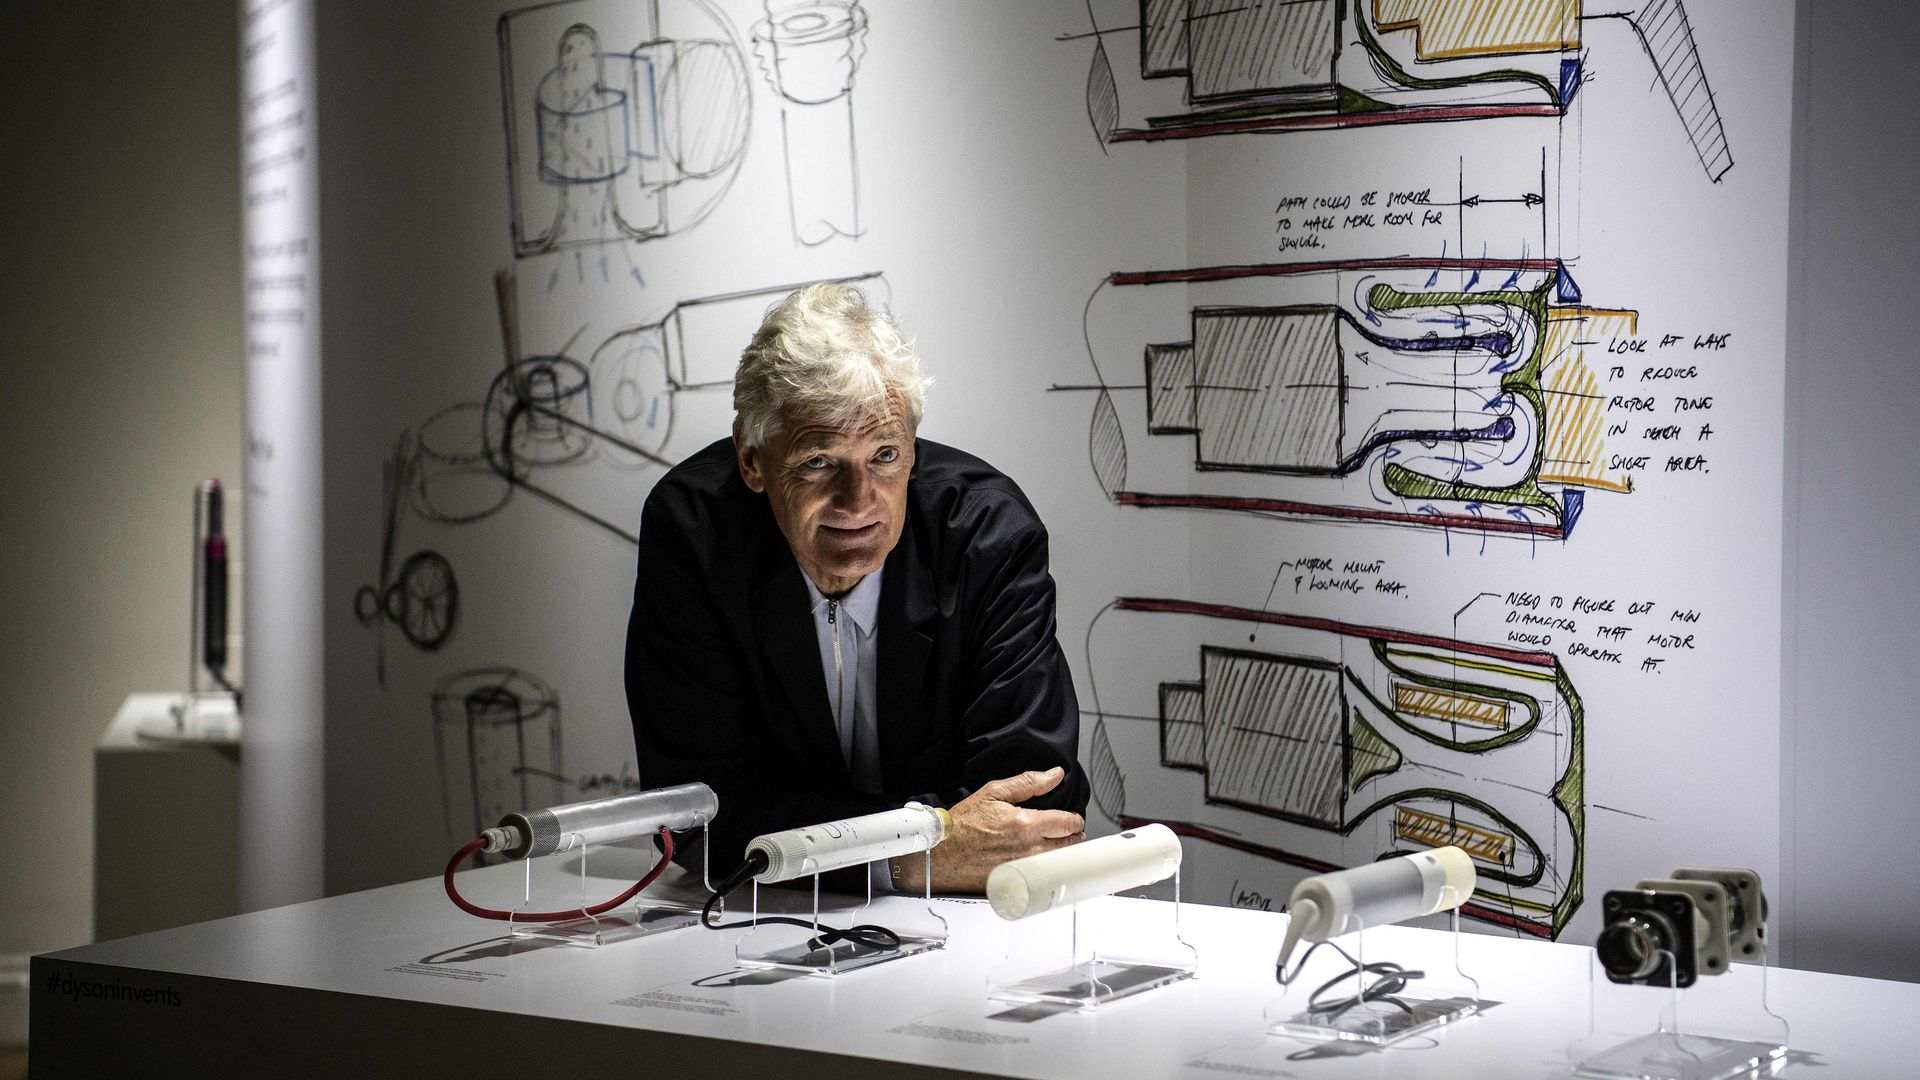 Dyson ceo leaning on a table with blueprints of vacuums.